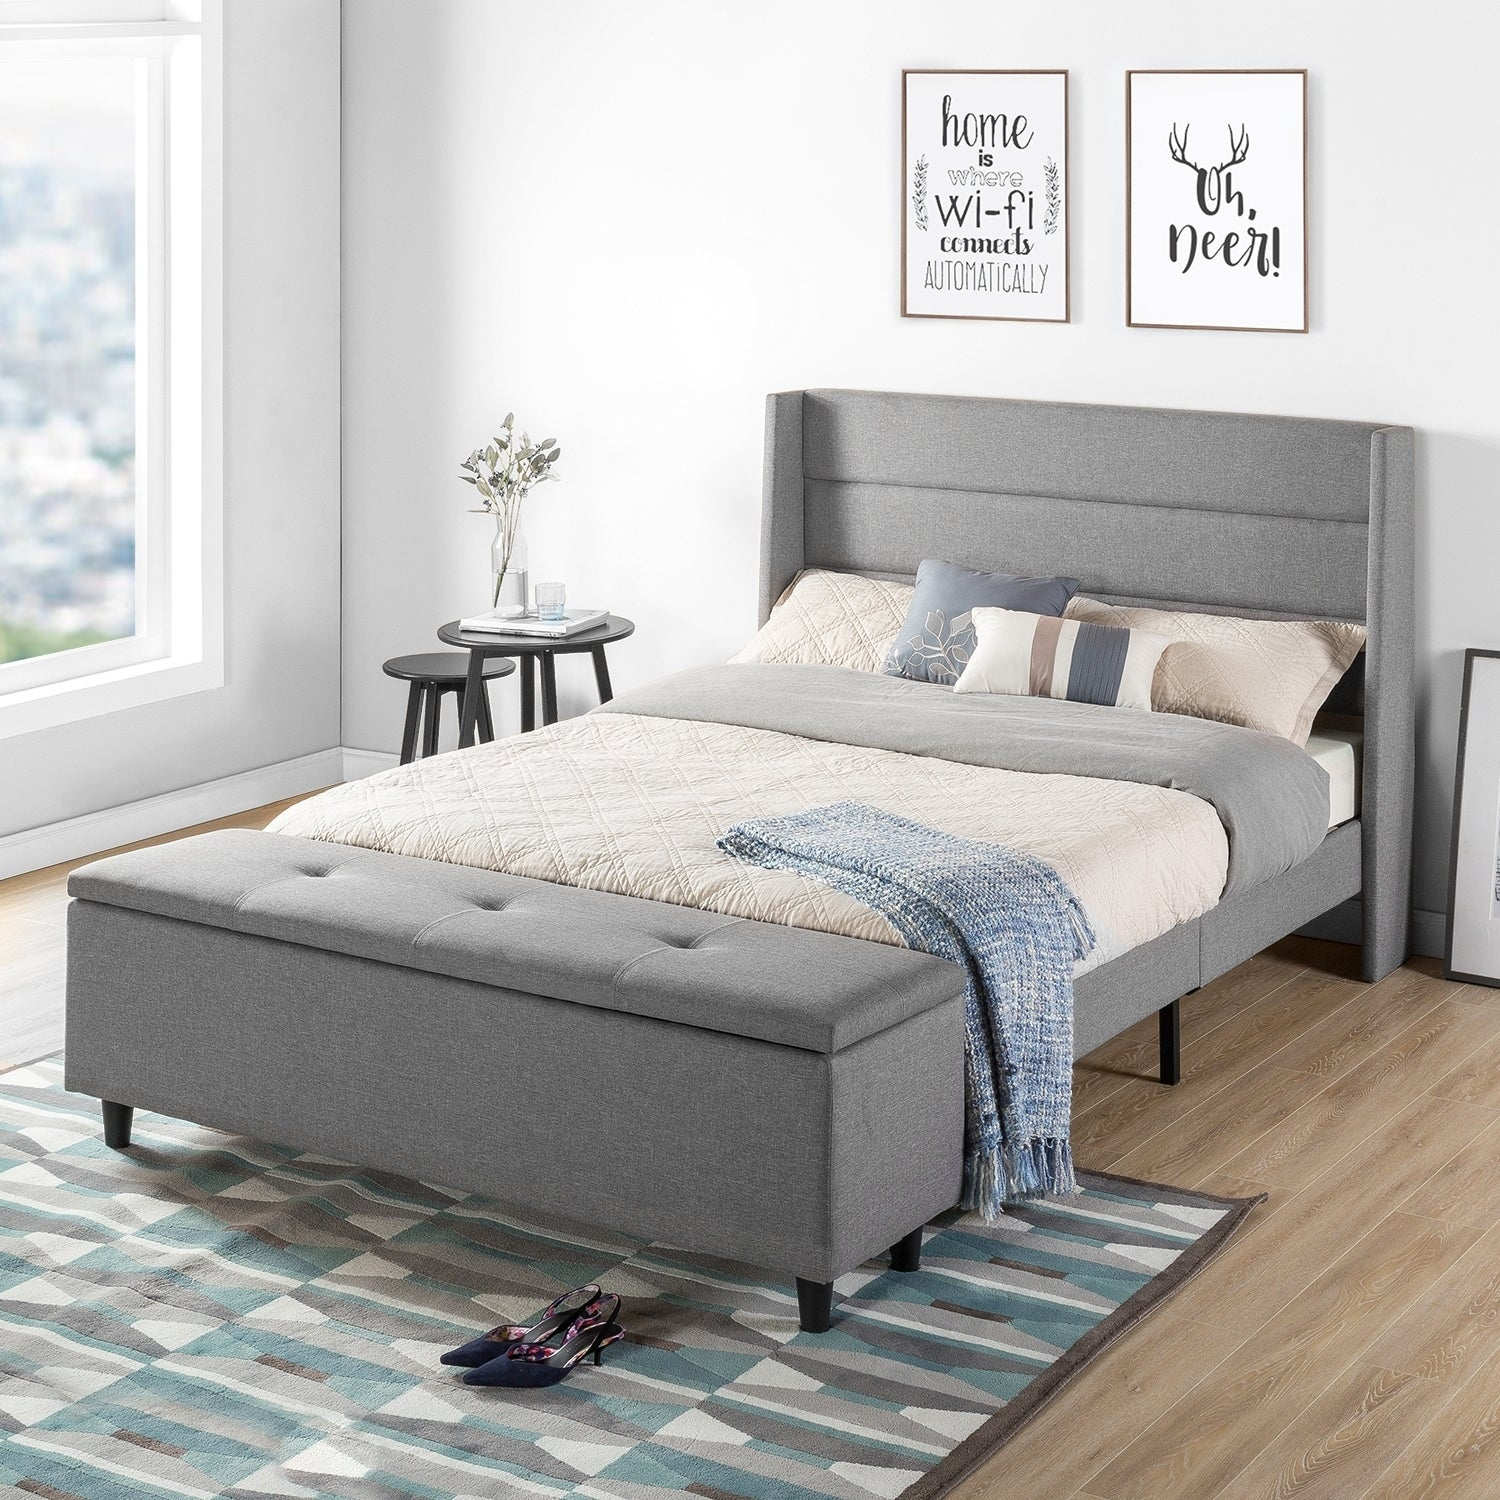 Full Size Modern Upholstered Platform Bed With Headboard And Storage Ottoman Crown Comfort On Sale Overstock 25859039